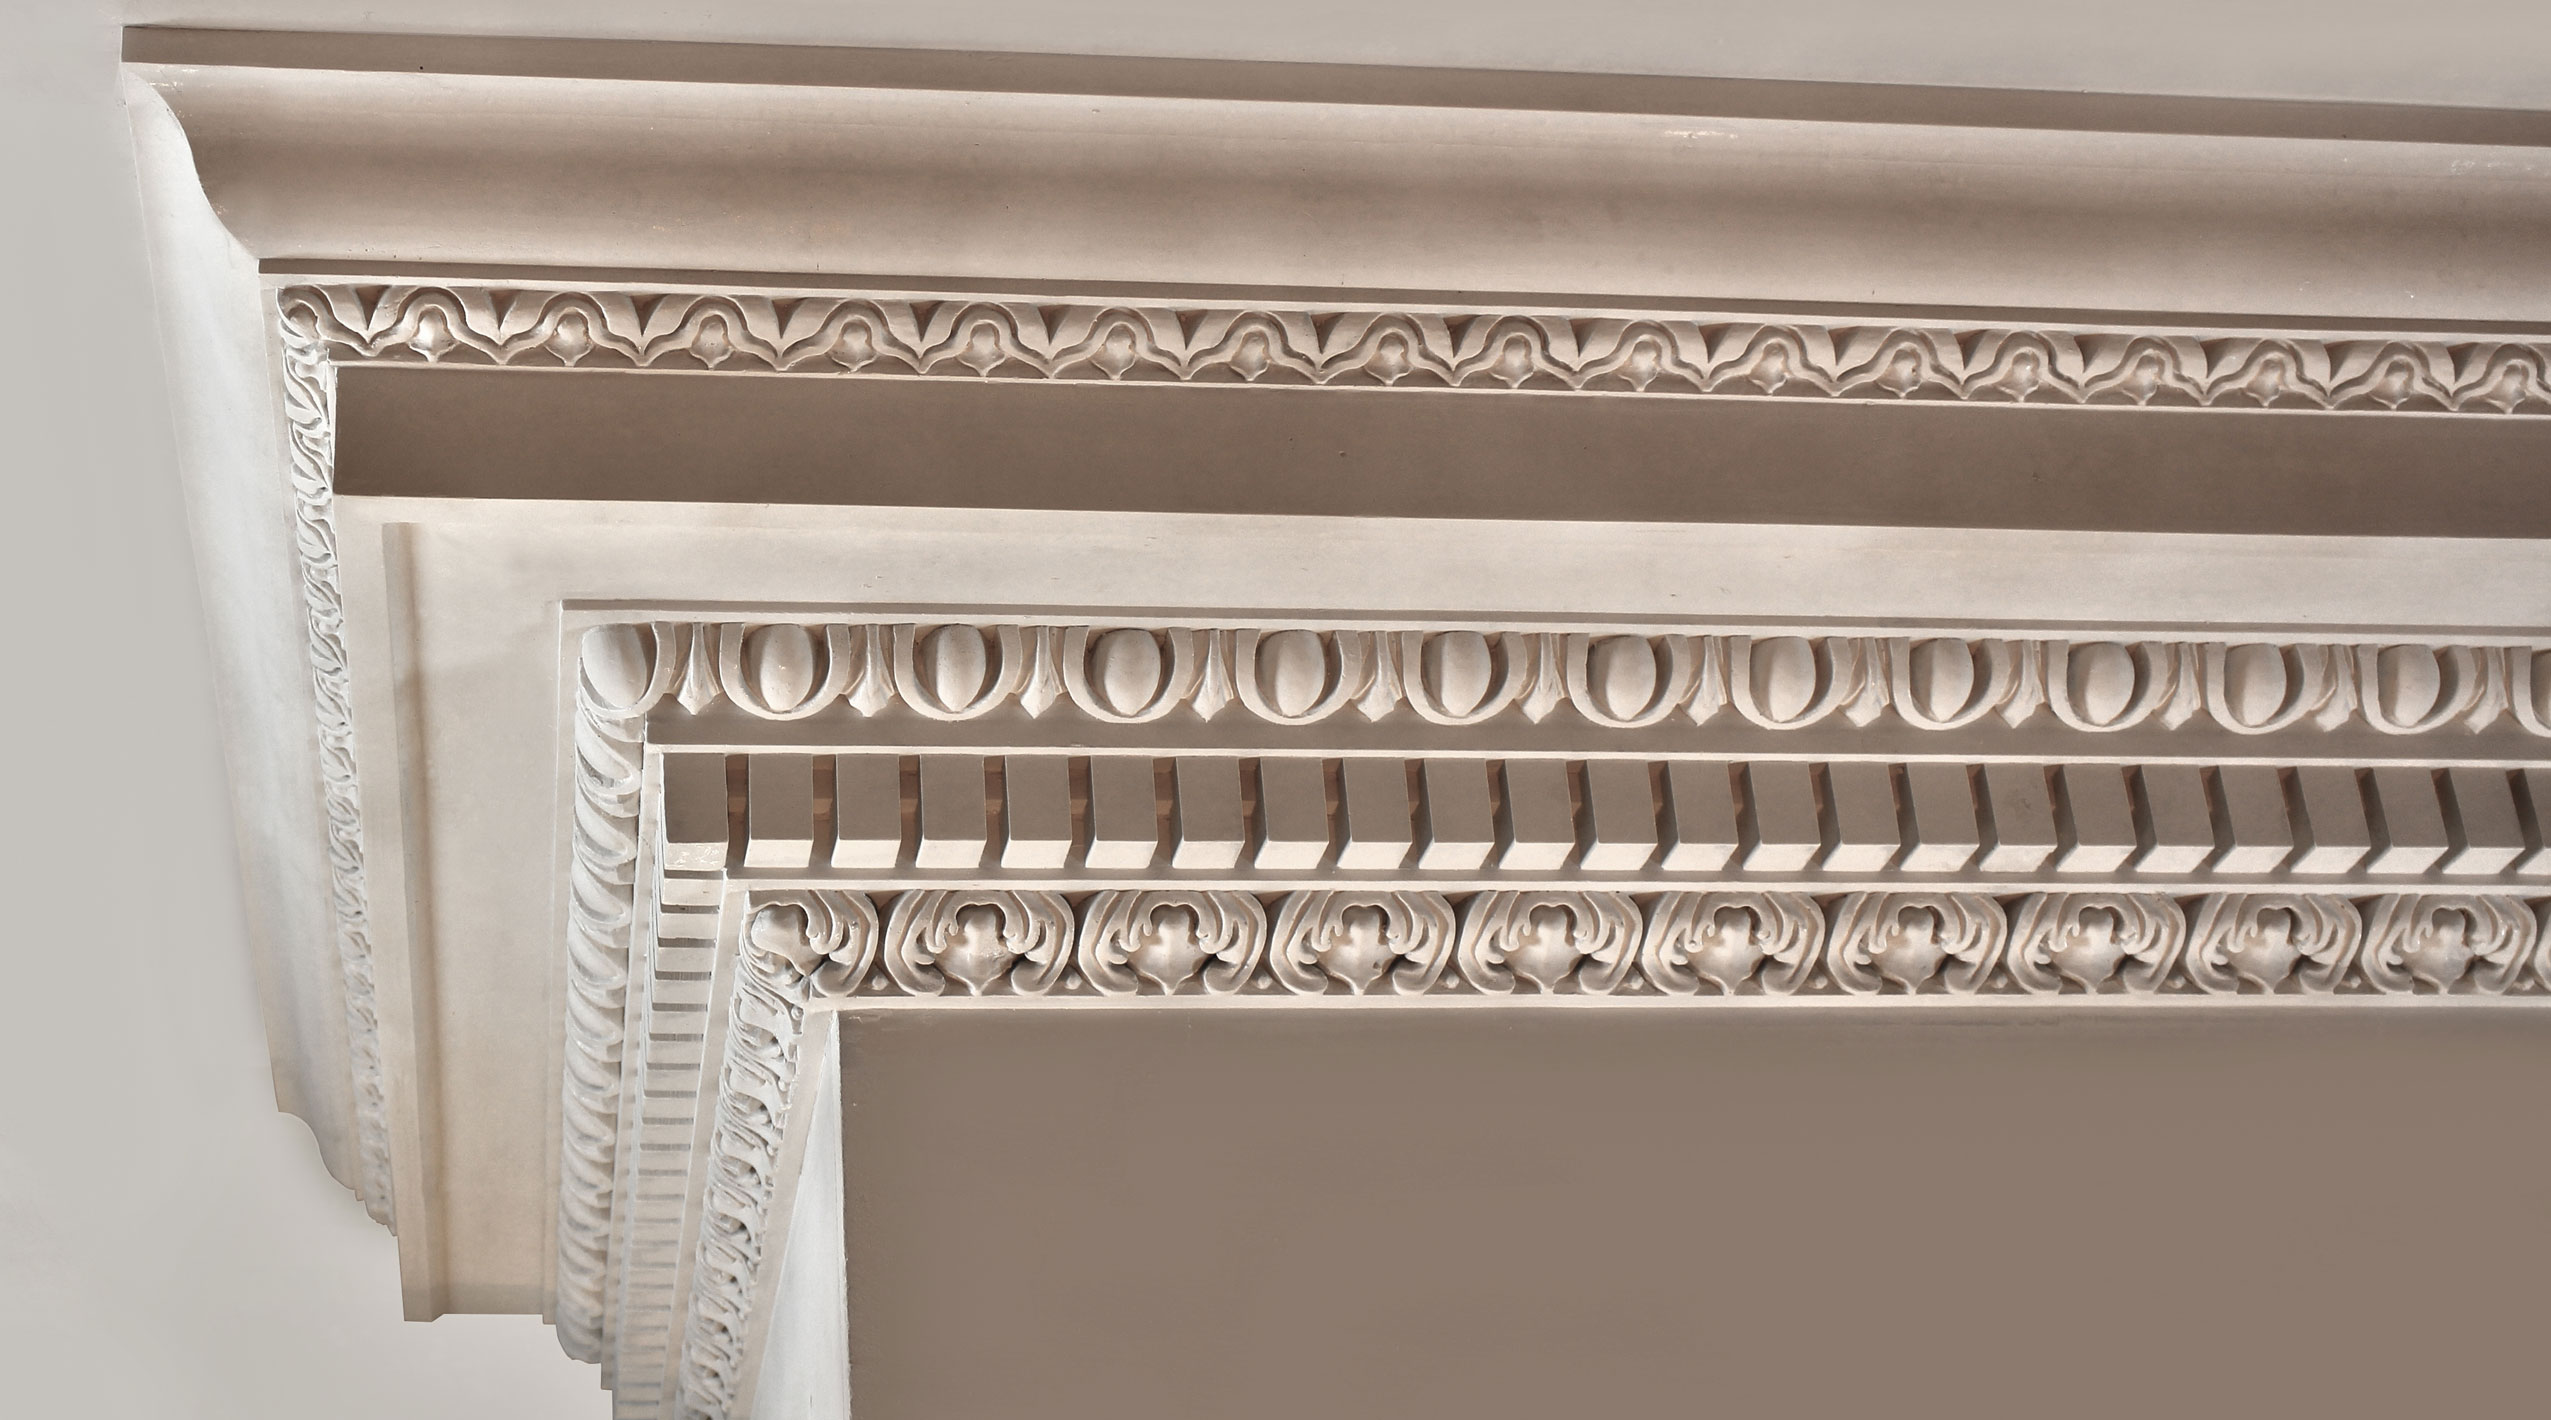 Georgian Period Cornice